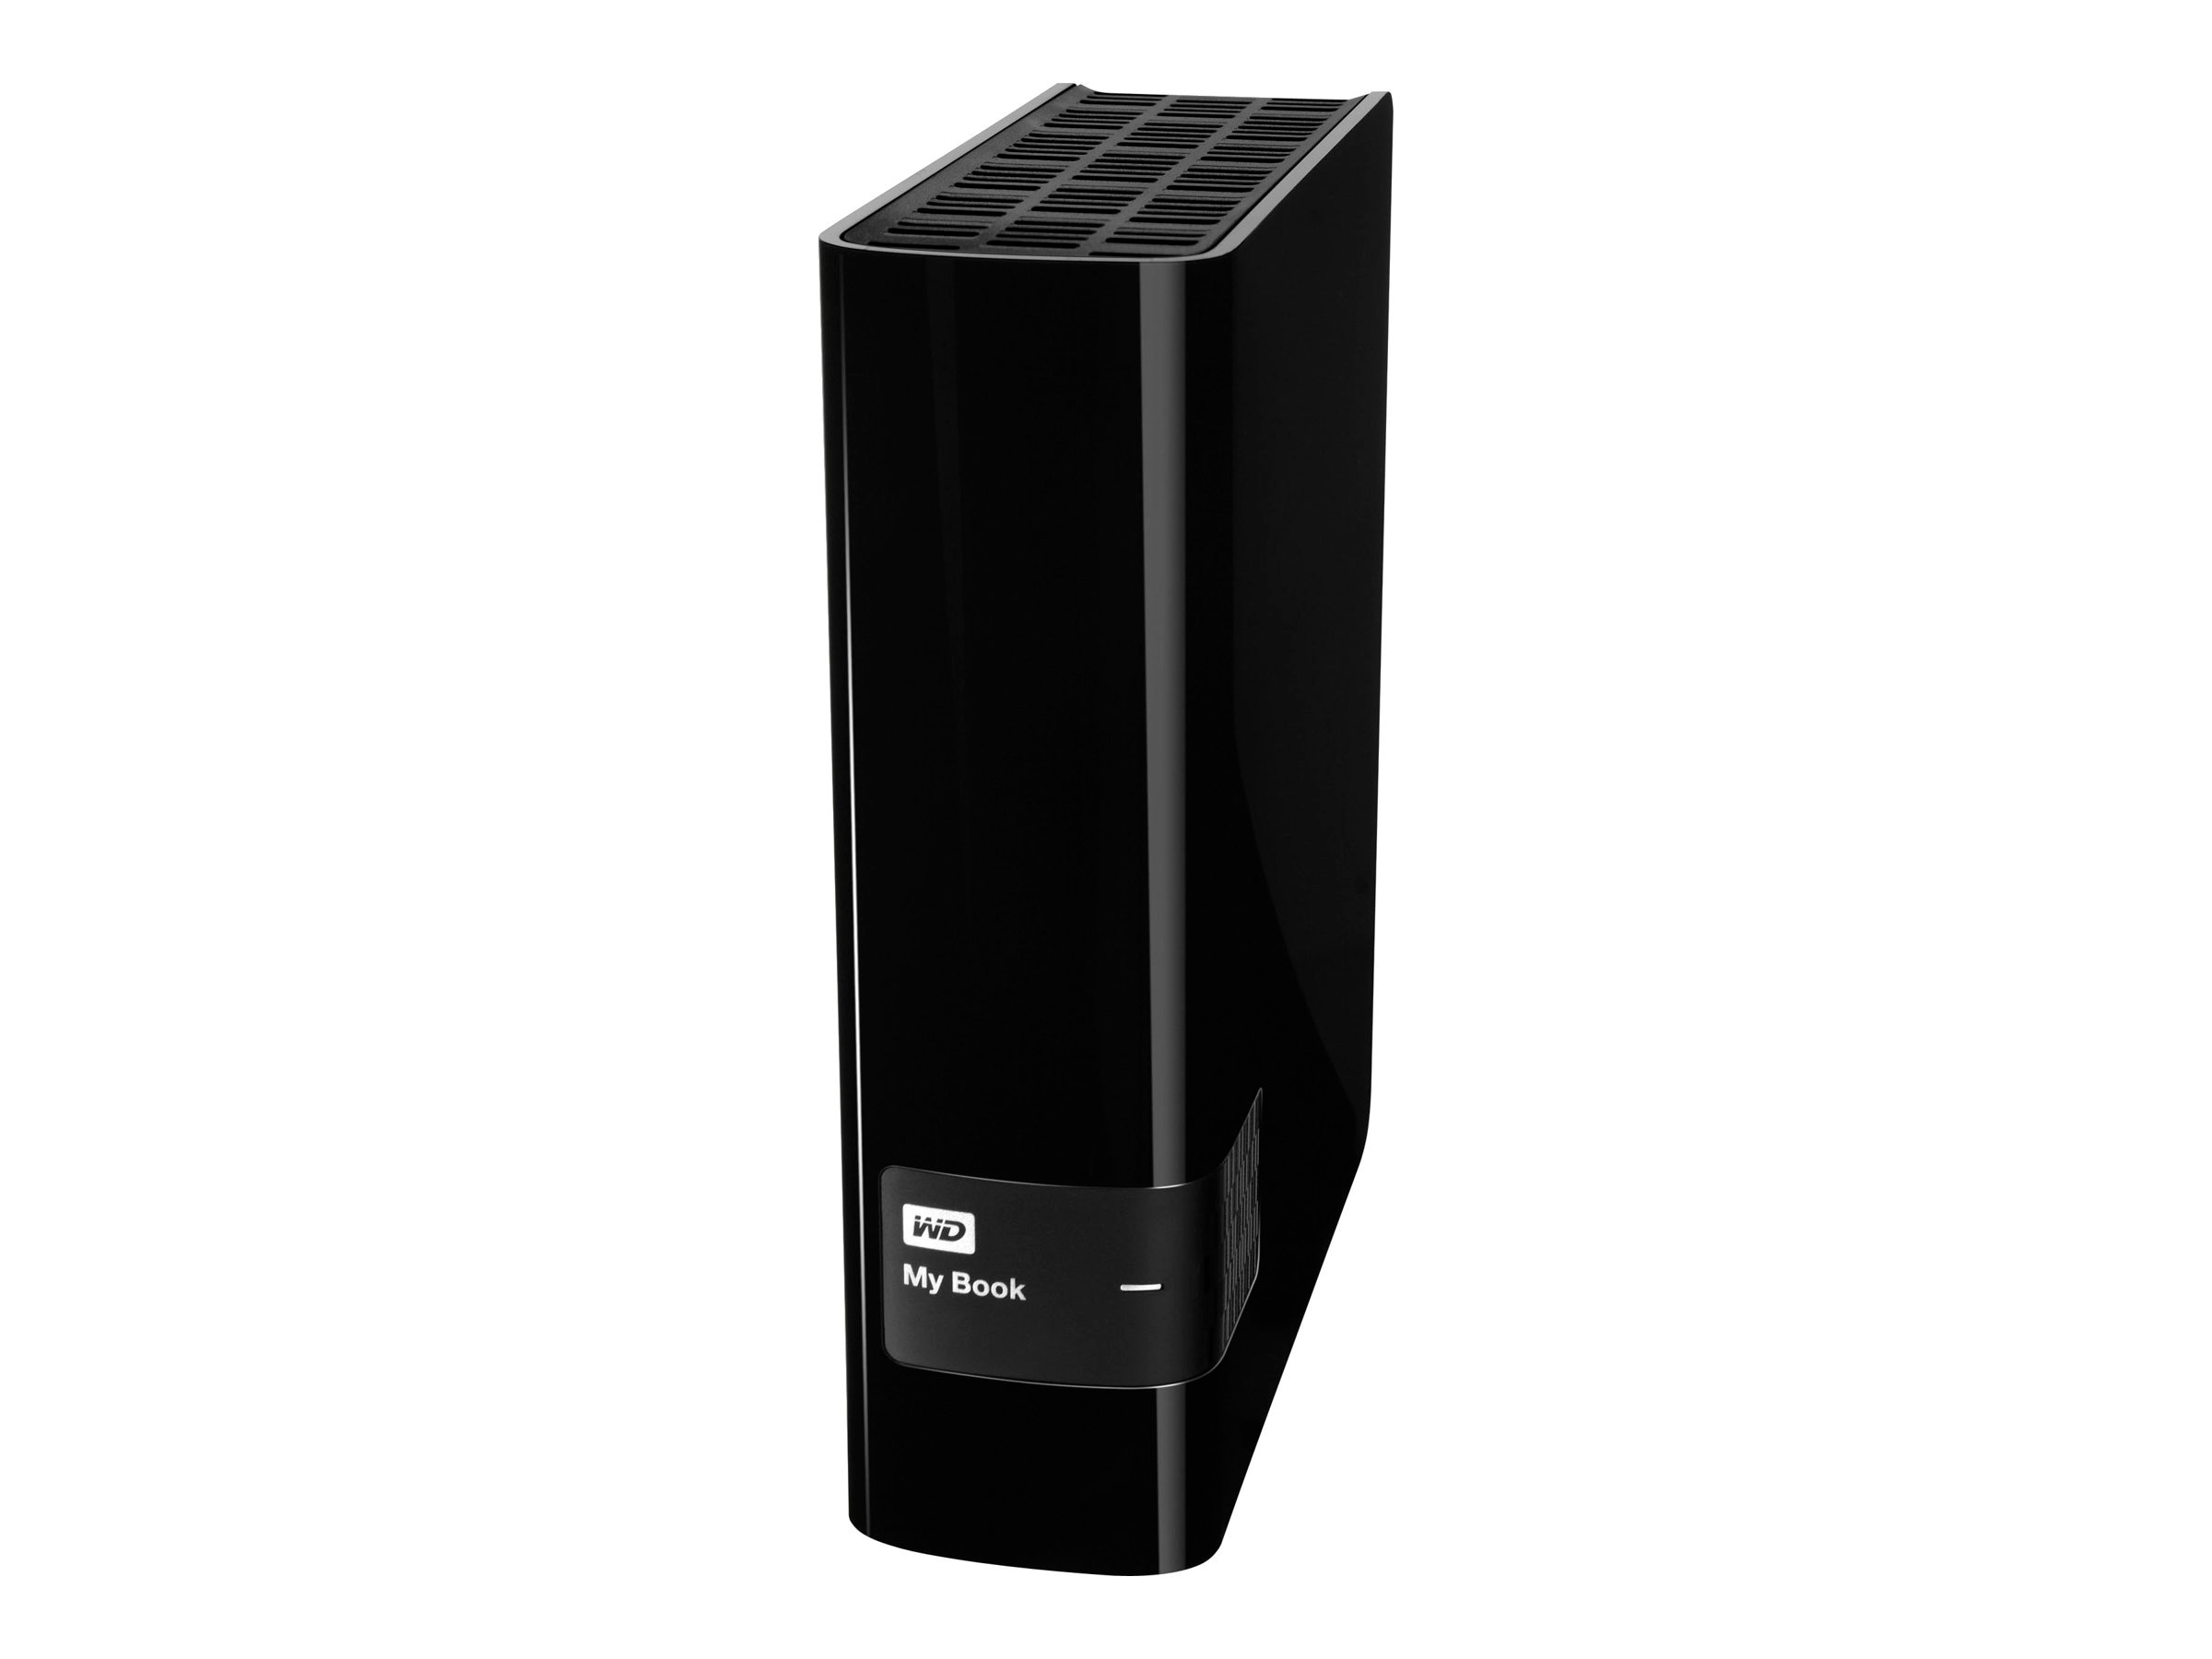 WD 4TB My Book Desktop USB 3.0 External Hard Drive, WDBFJK0040HBK-NESN